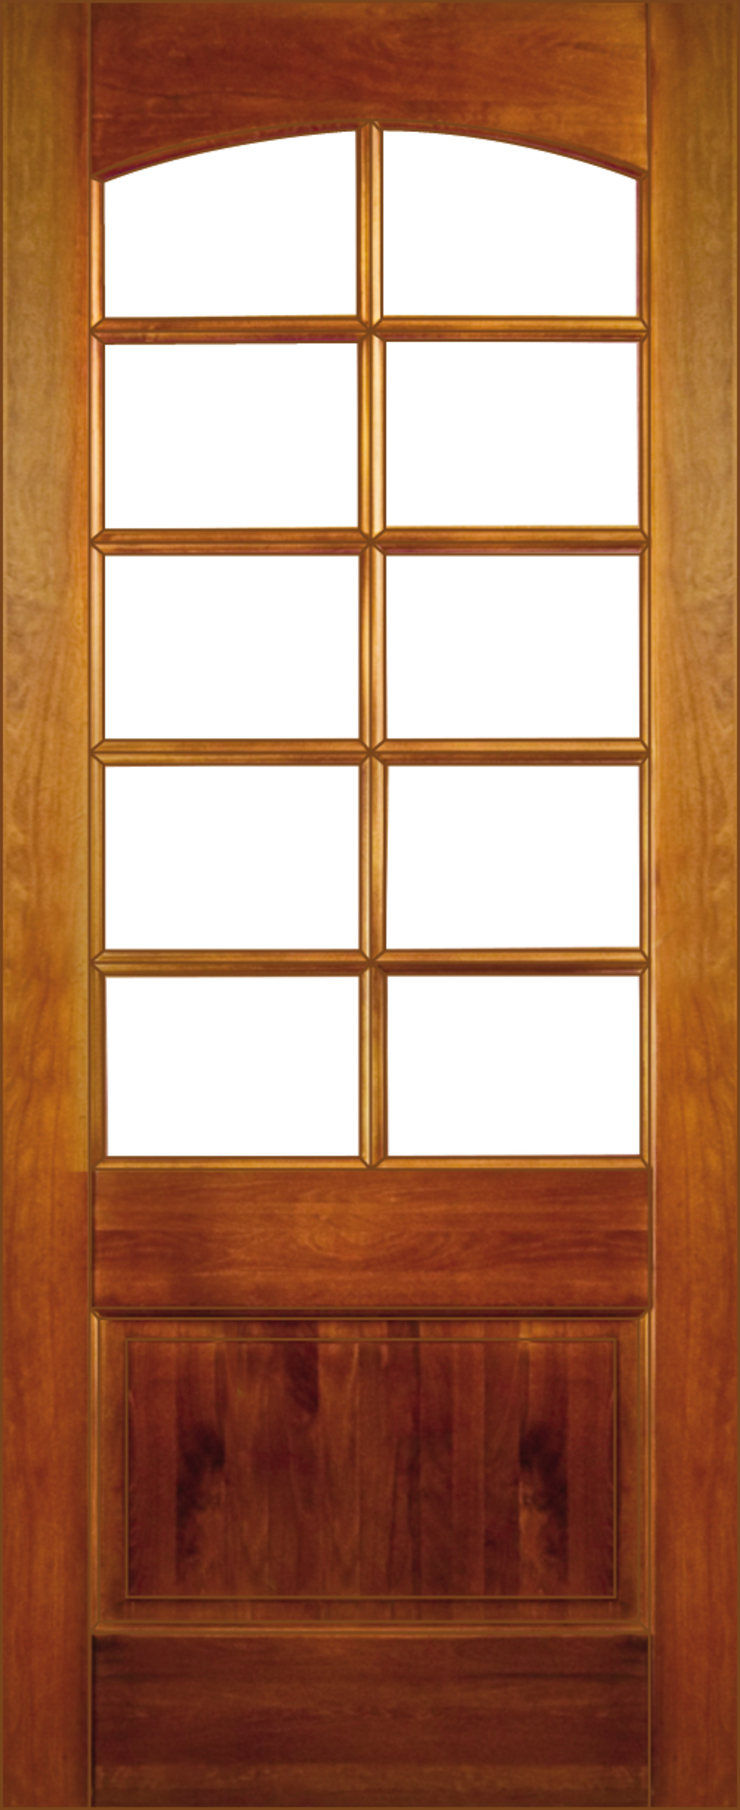 Ignisterra S.A. Classic windows & doors Wood Brown